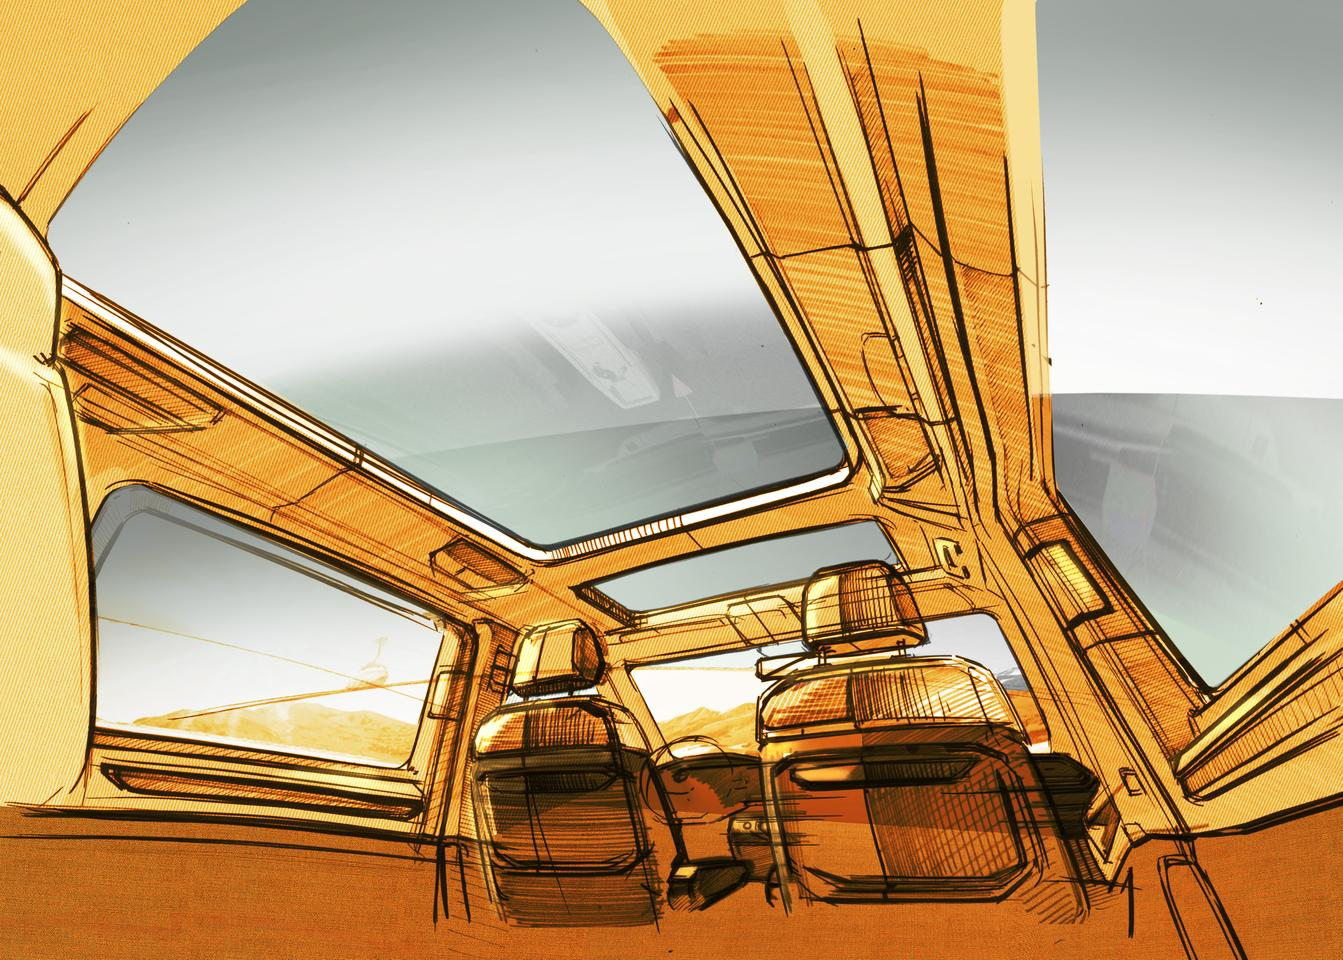 Volkswagen teases a large Multivan glass roof and a more versatile interior with full floor rail system and only individual seats